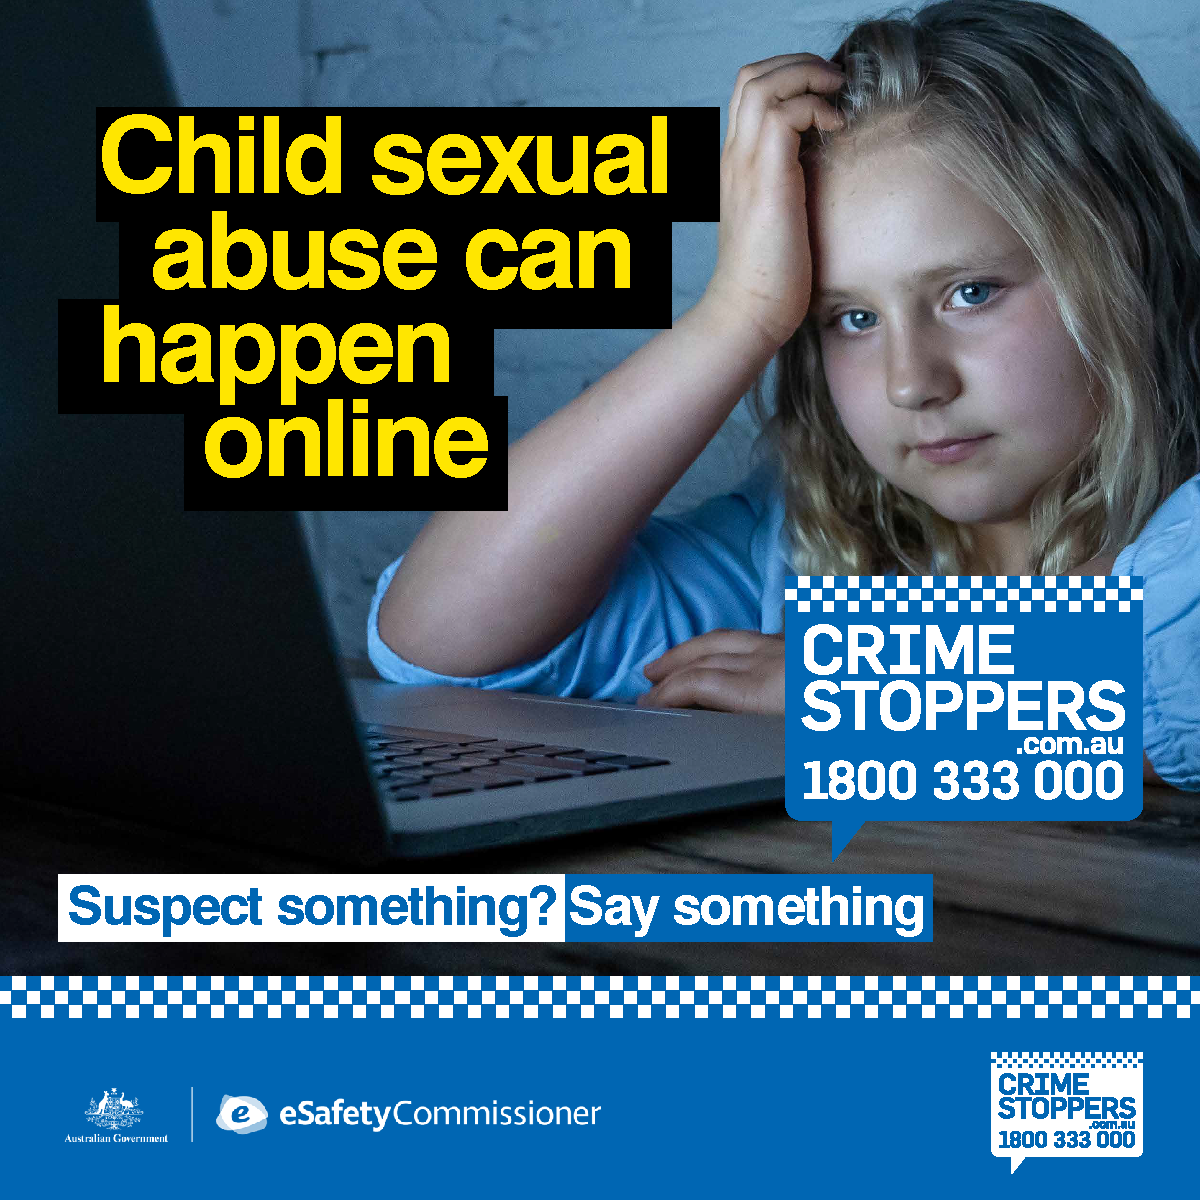 Crime Stoppers launches national partnership with eSafety Commissioner to keep children safe online